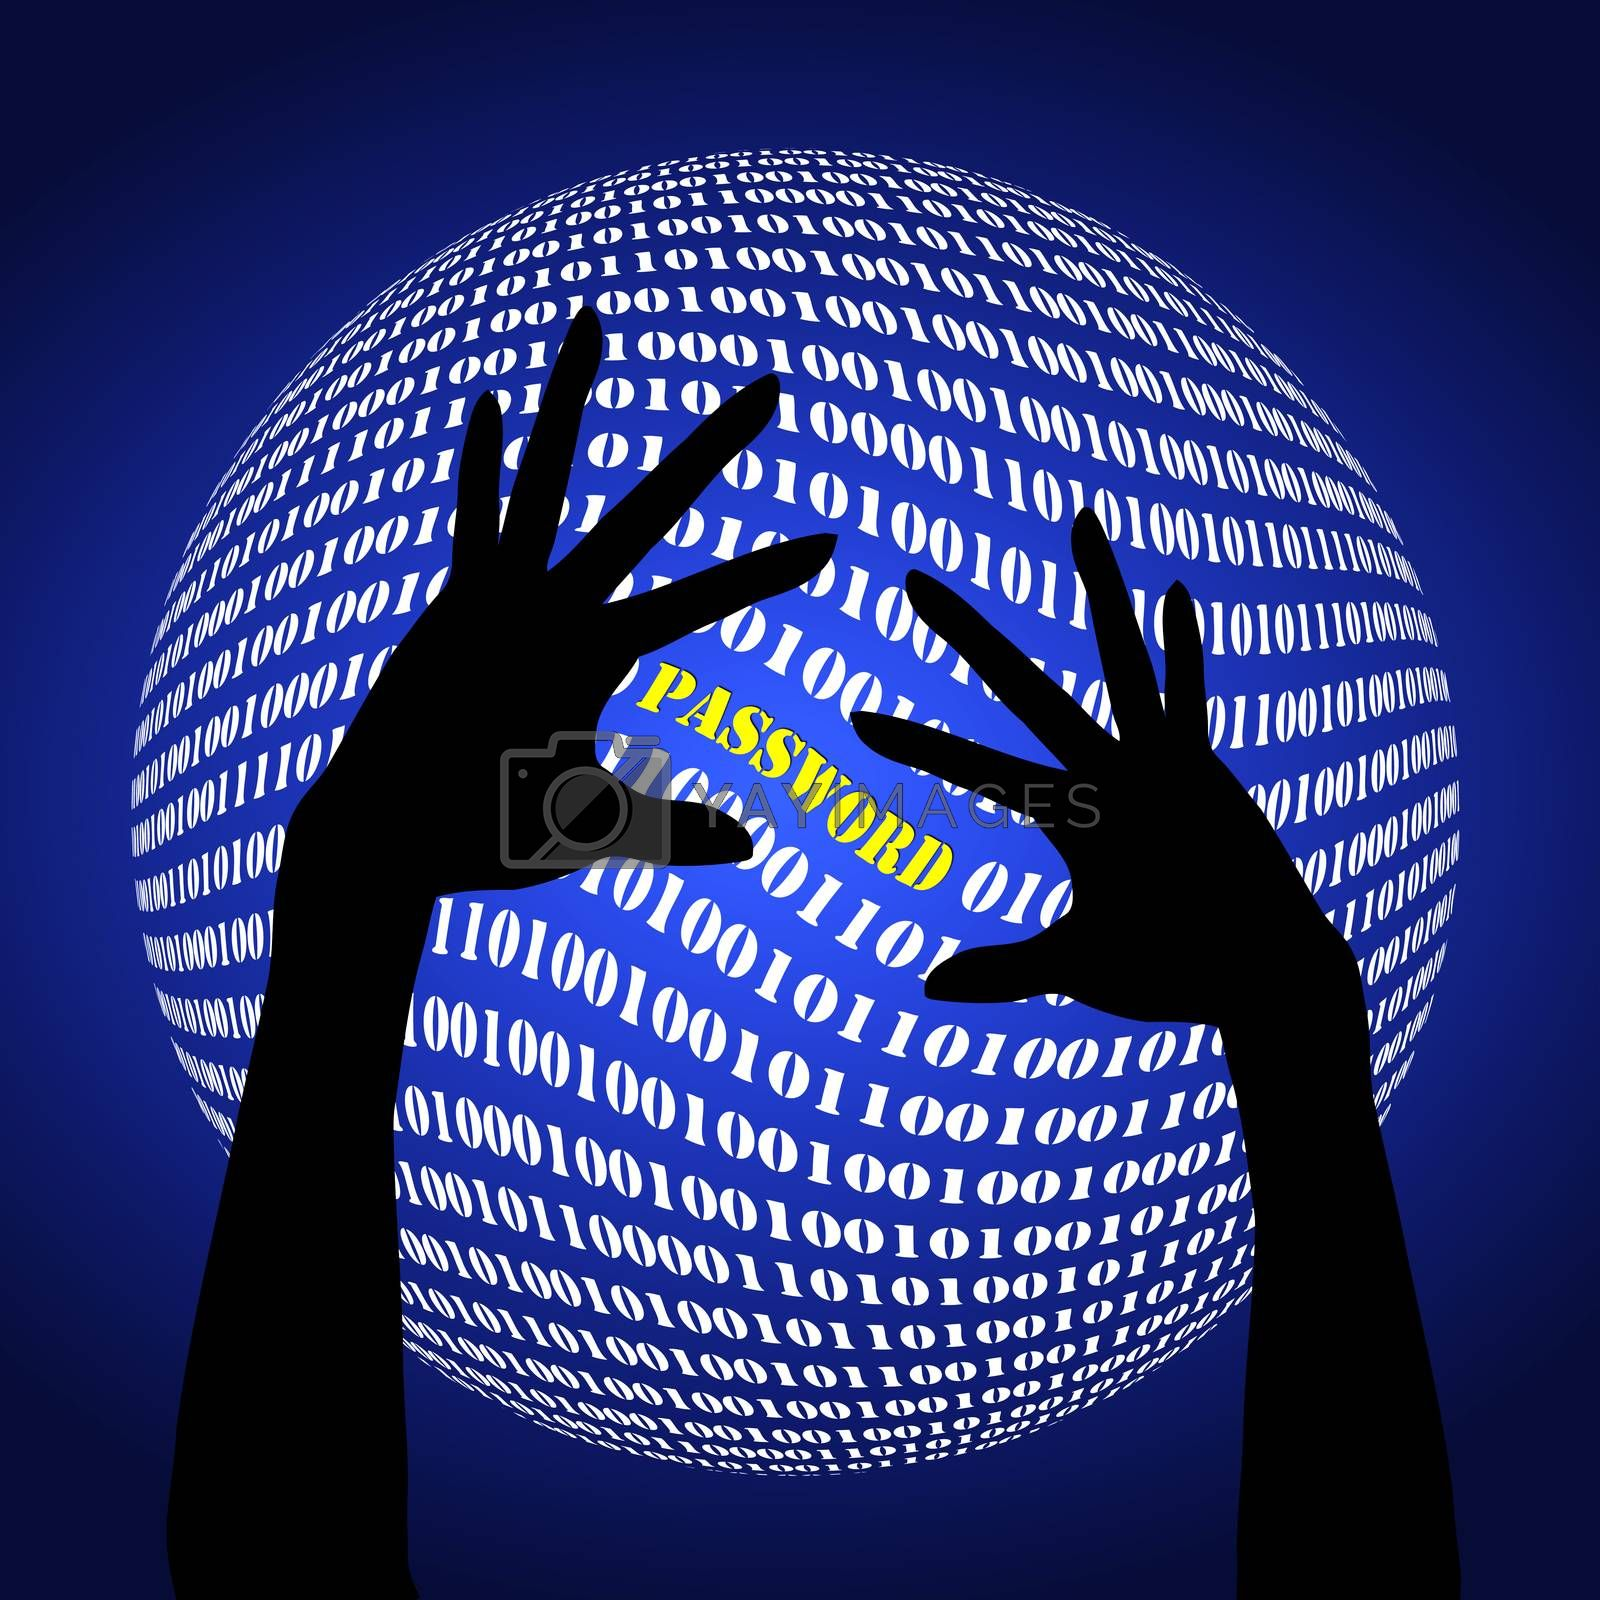 Warning sign to become alert to identity fraud on the internet